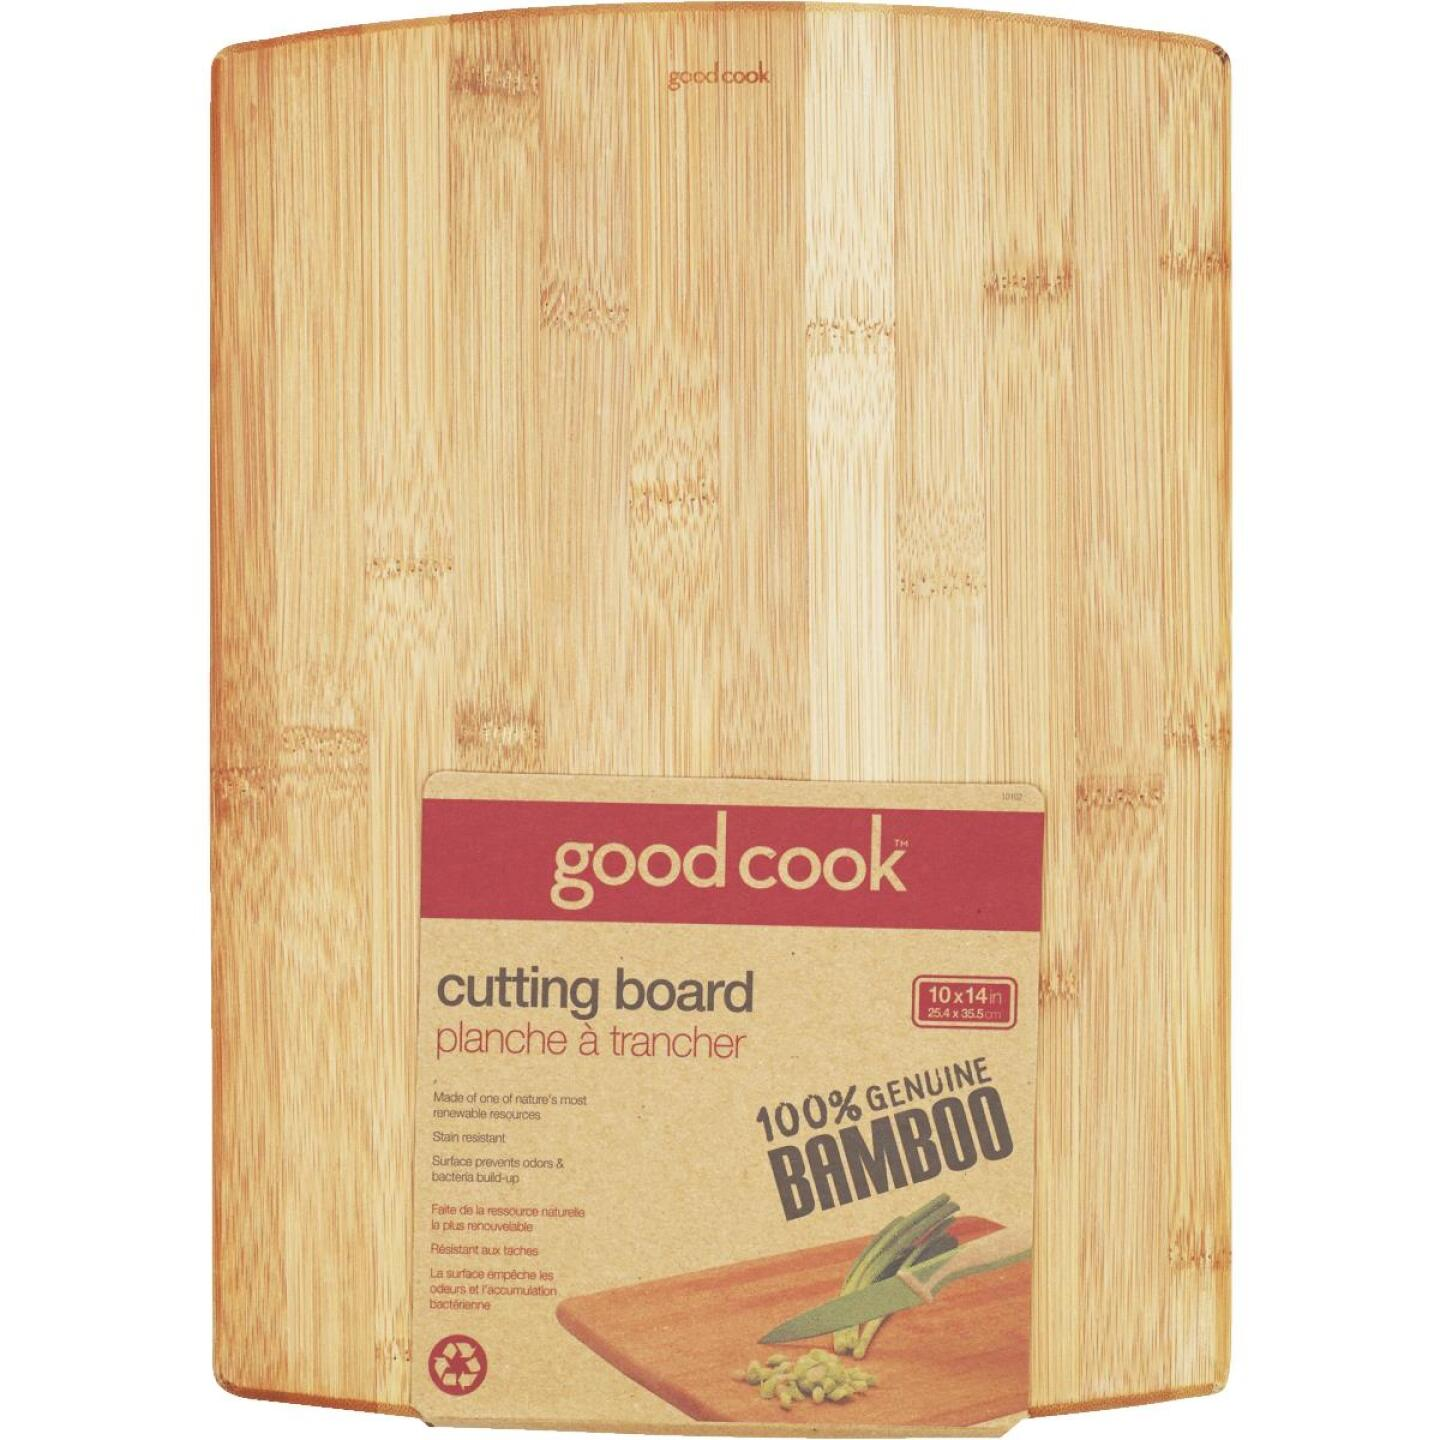 Goodcook 10 In. x 14 In. Bamboo Cutting Board Image 1